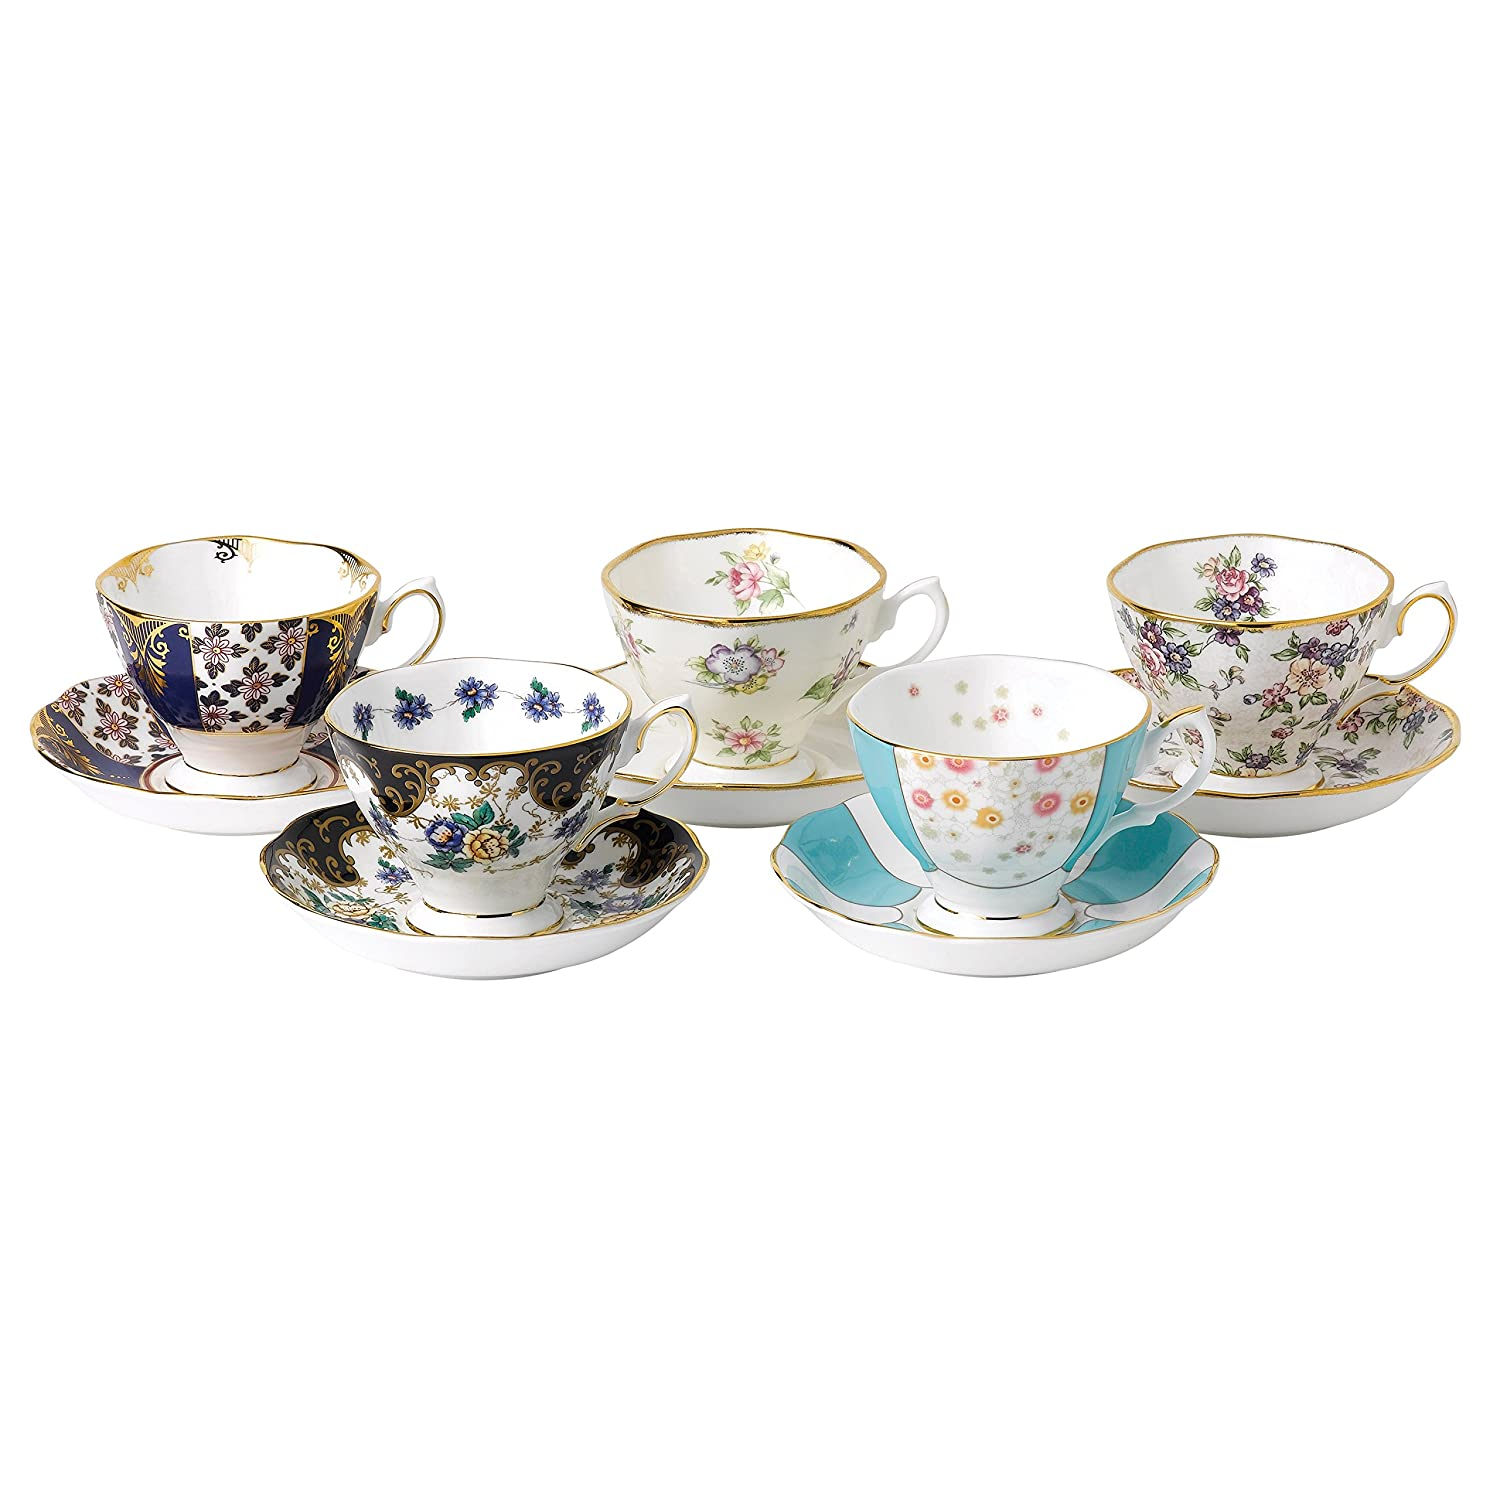 Royal Albert 40017543 100 Years 1900-1940 Teacup & Saucer Set, Multicolor , 5 Piece